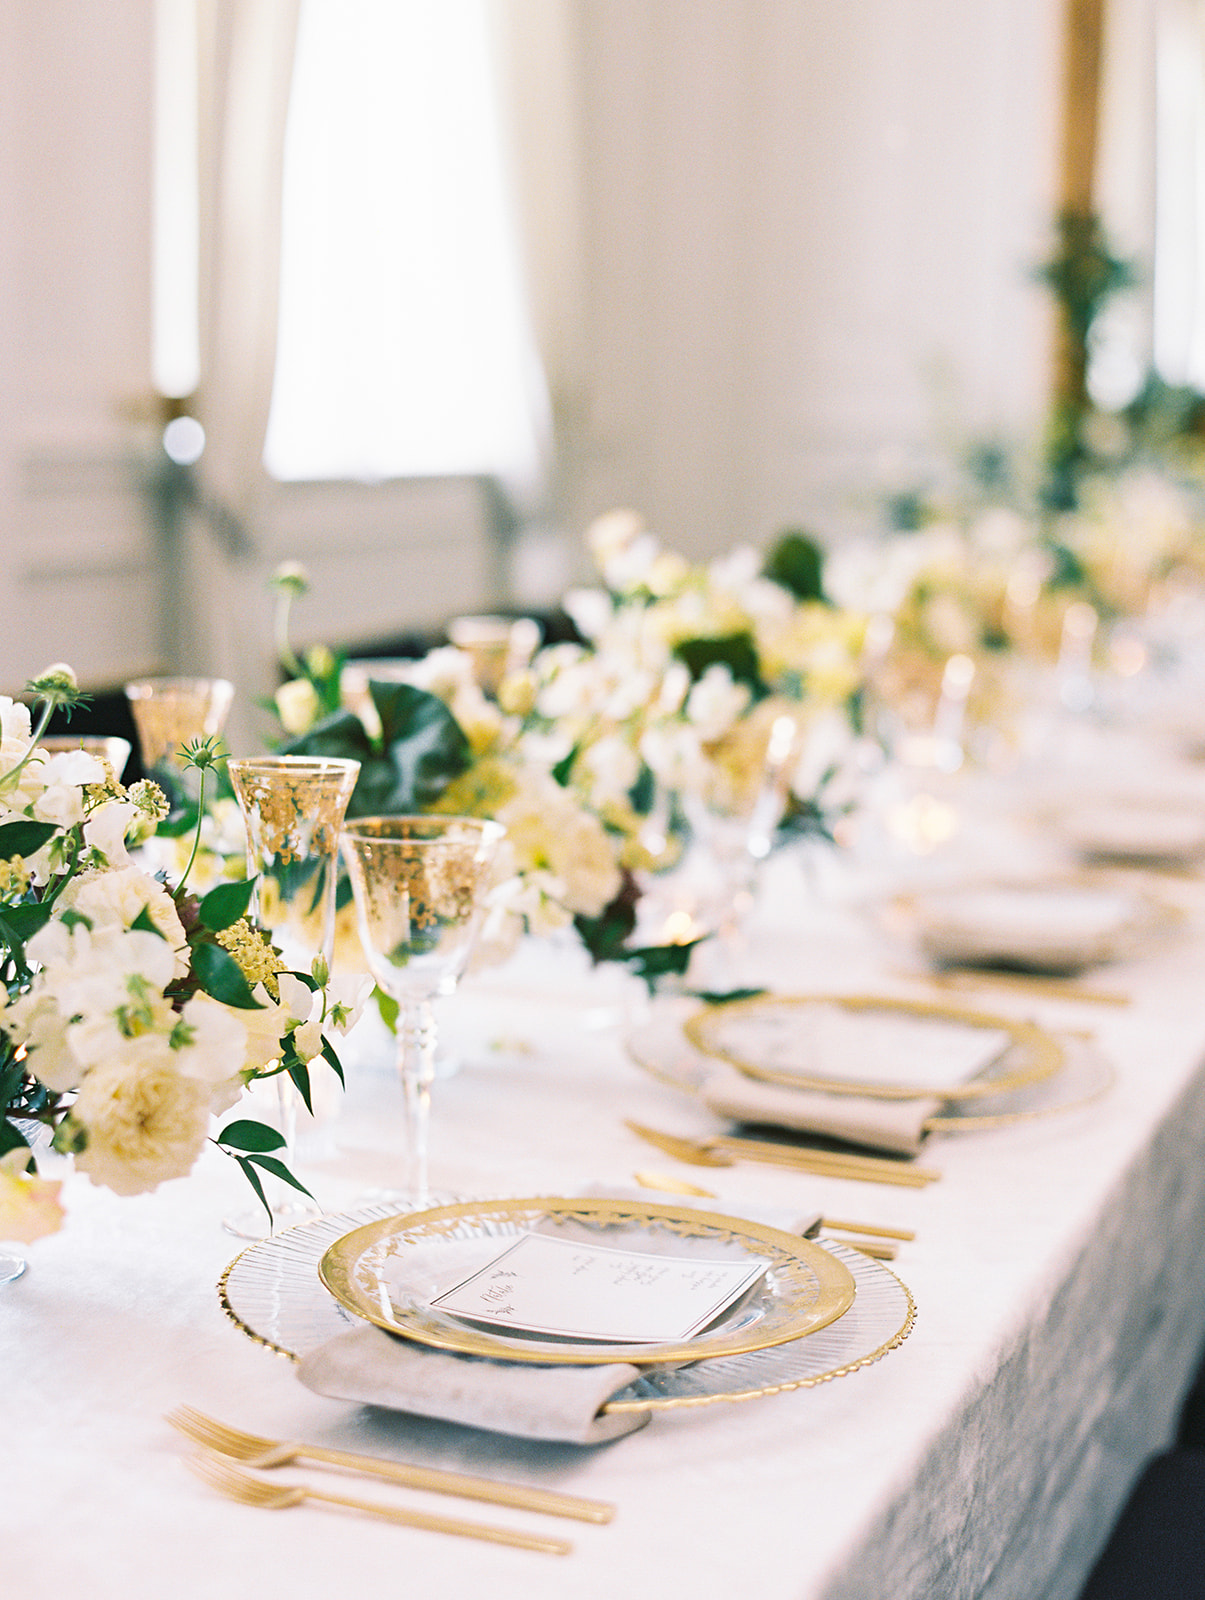 Chic wedding table setting at The Mason Dallas